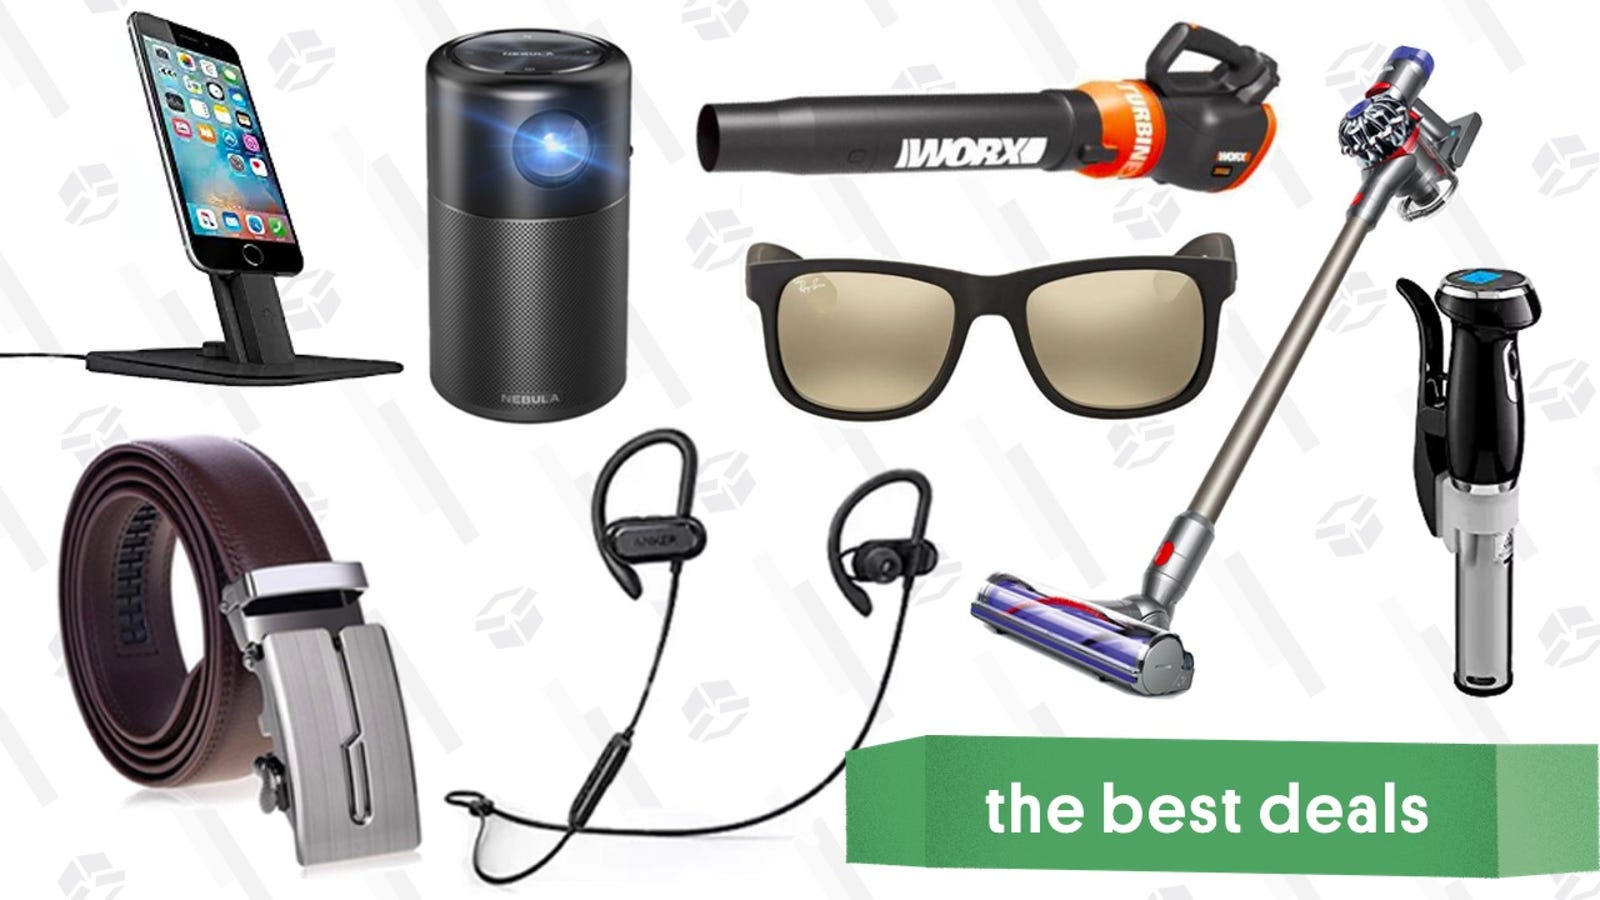 Friday's Best Deals: eBay Sale, Sous-Vide Cookers, Ray-Ban Sunglasses, and More